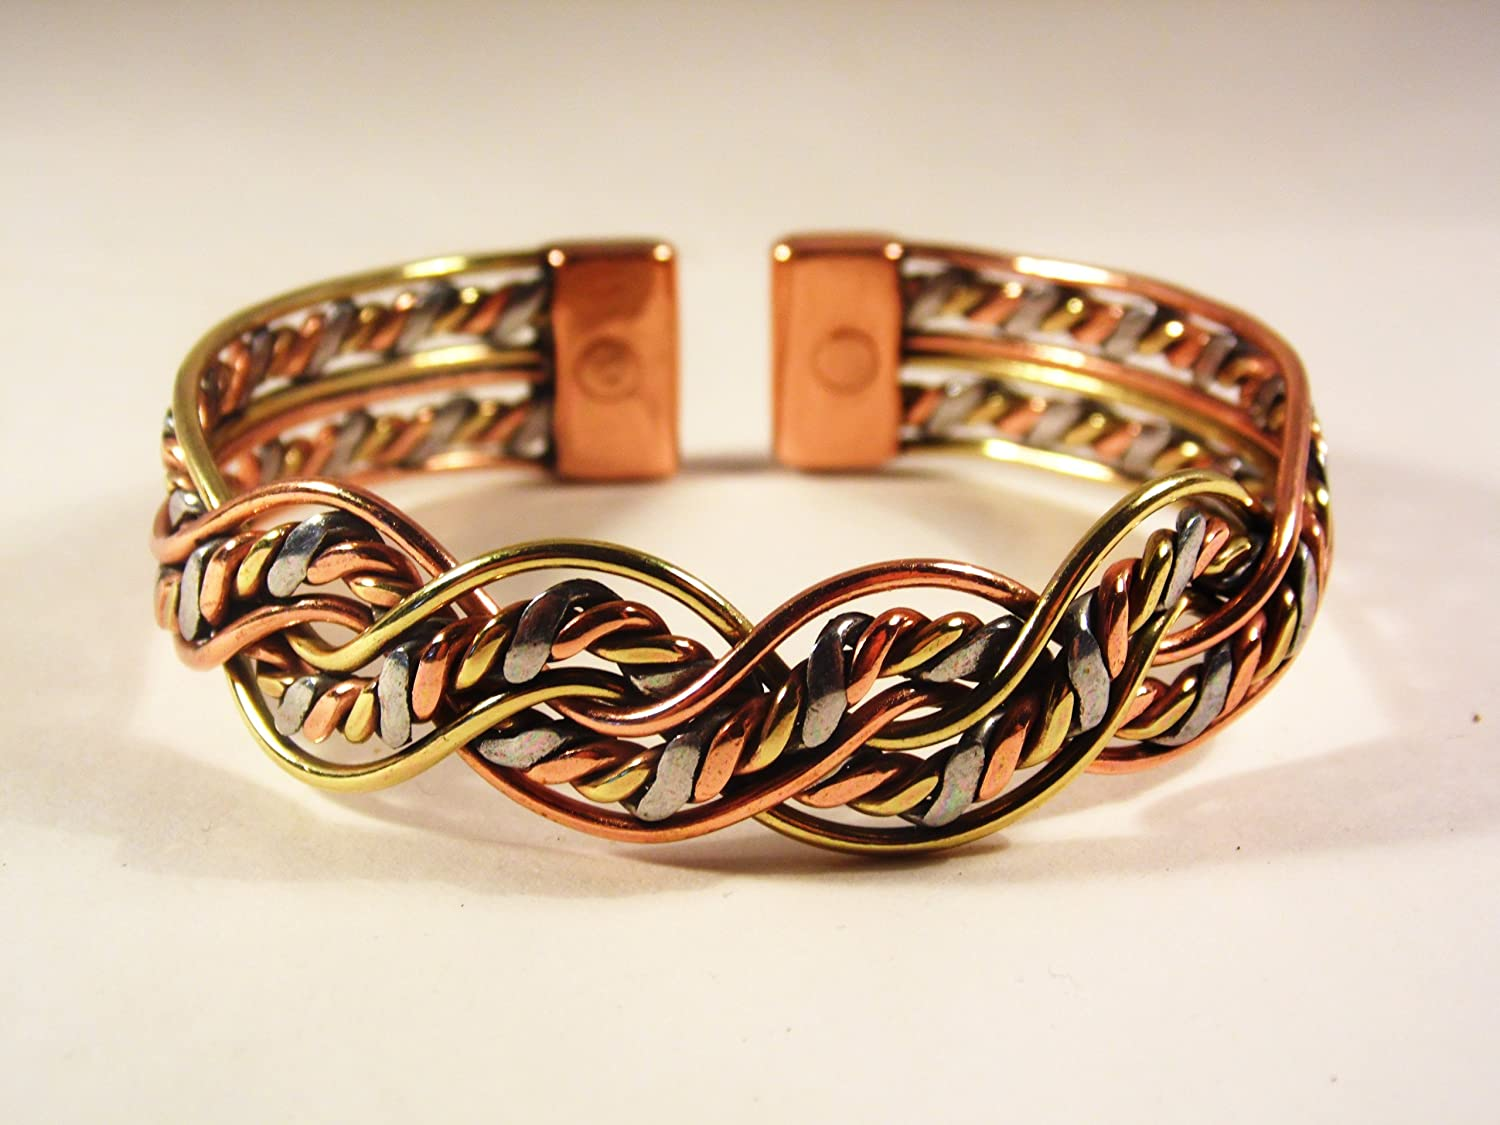 Magnetic Three Colour Twist Bracelet with Etched-0n Lines design Copper Magnetic Ring Combi Set (MEDIUM RING SIZE: 19 - 21mm) 80Ca3VgM